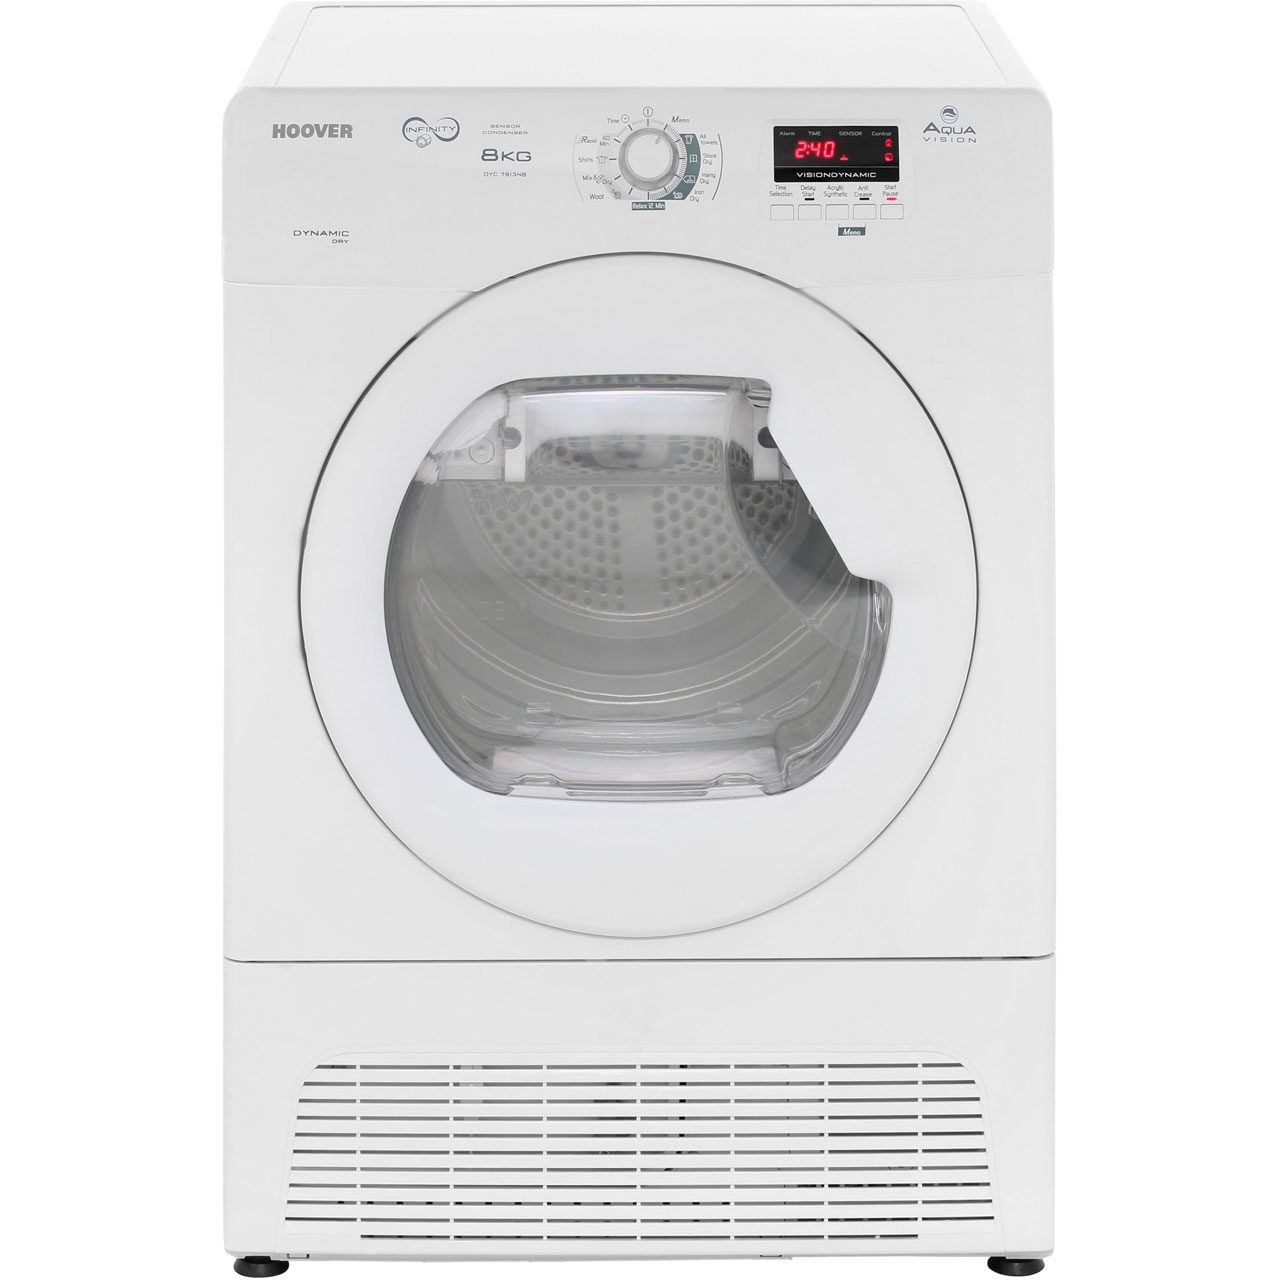 Hoover Aquavision DYC7813NB Condenser Tumble Dryer - White